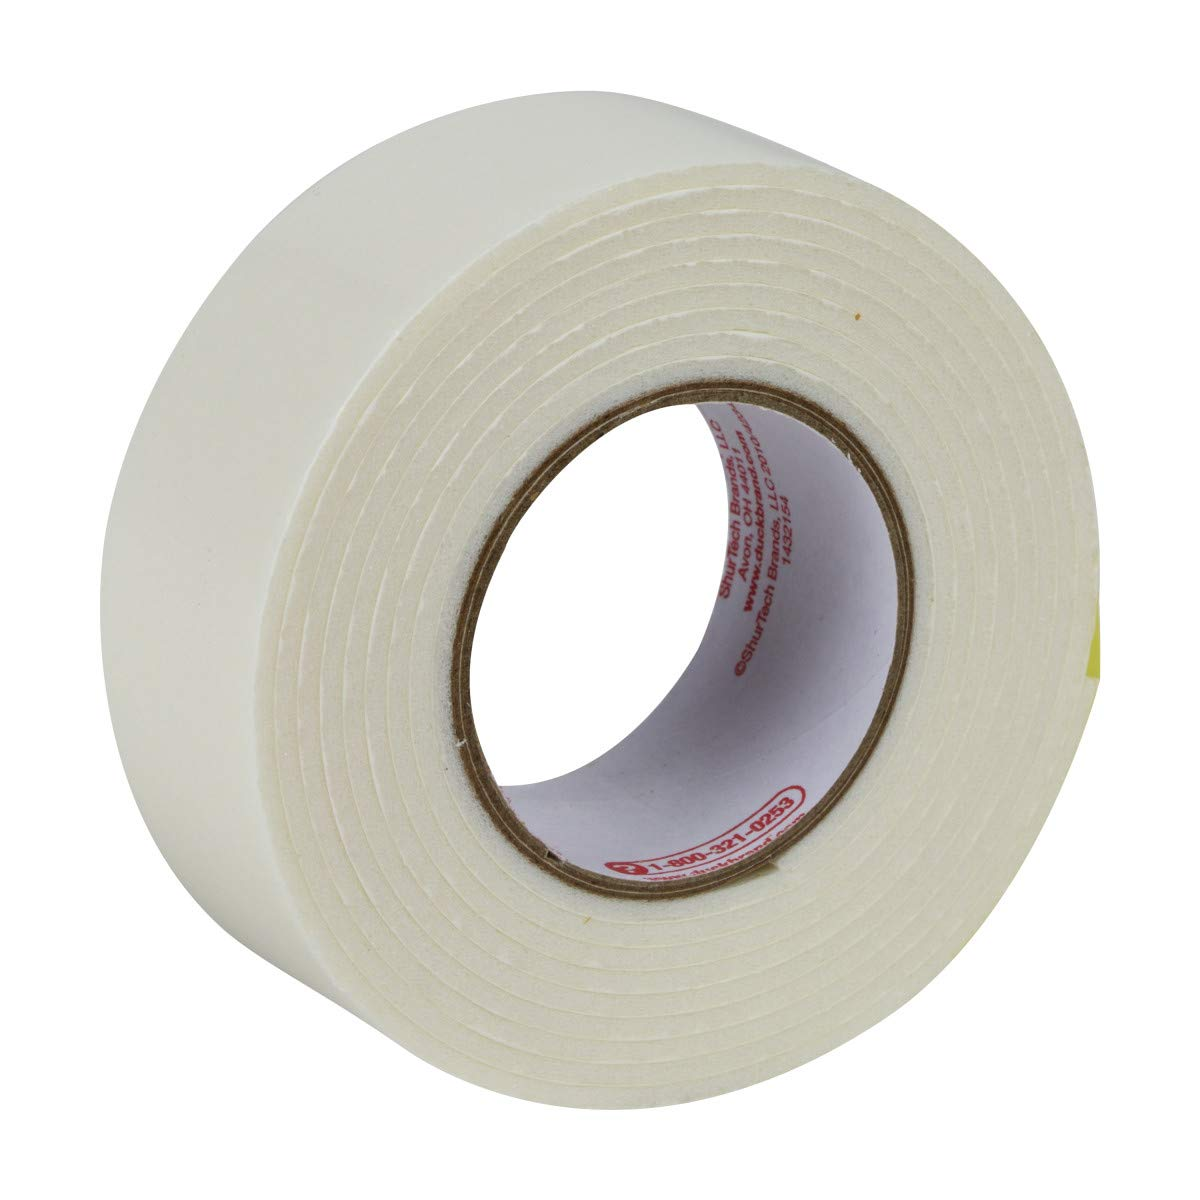 394666 Double-Sided Duck Brand Permanent Foam Mounting Tape Single Roll White 0.75-Inch x 15 Feet